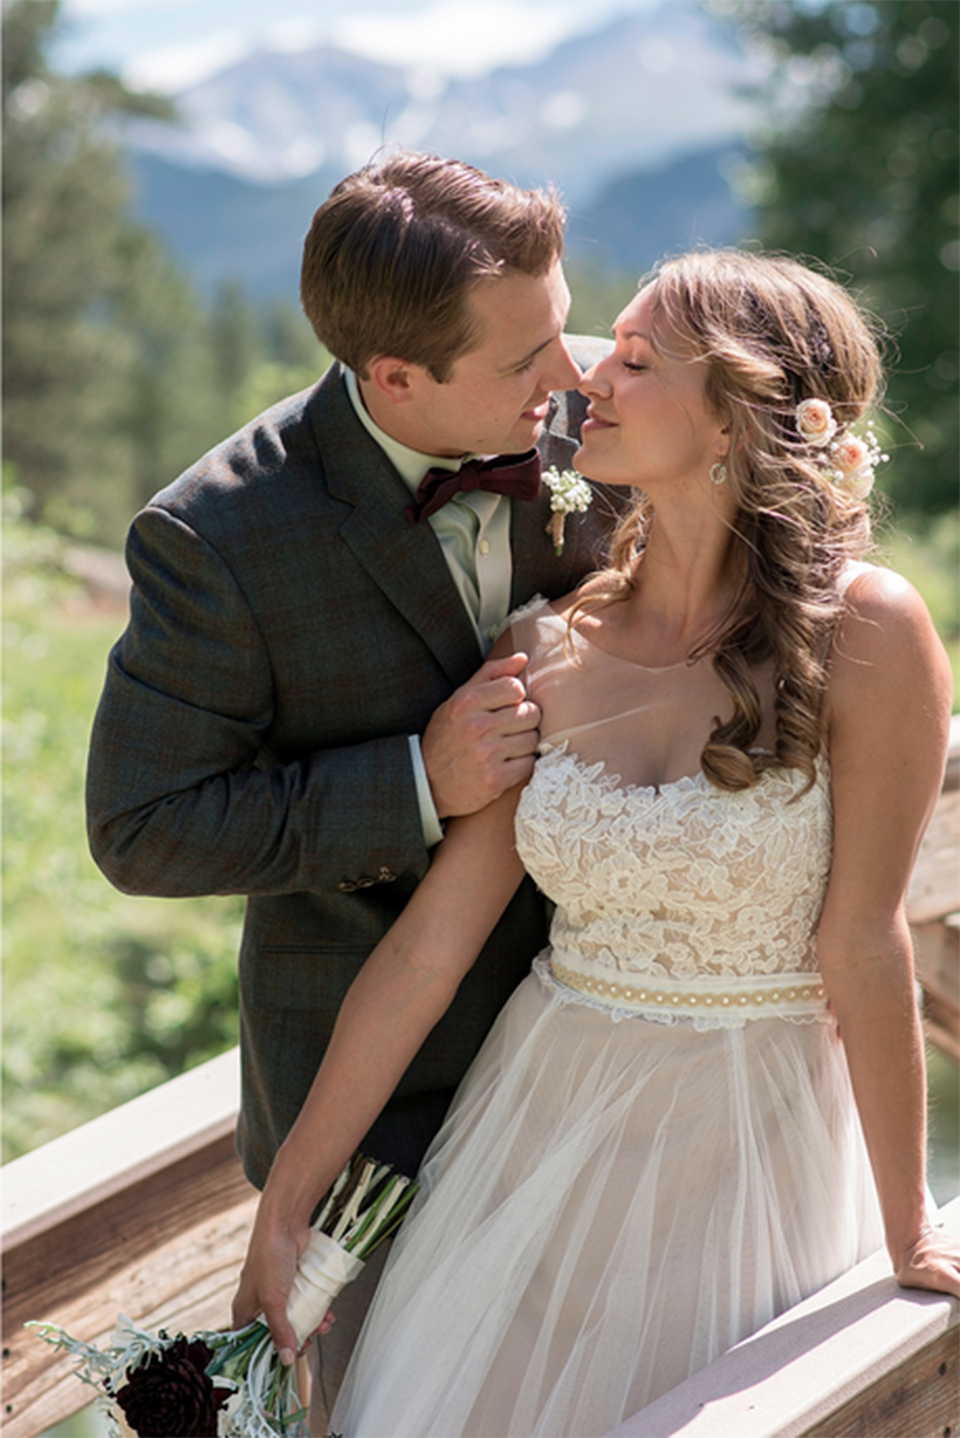 lovemarley-realbride-colorado-8.jpg